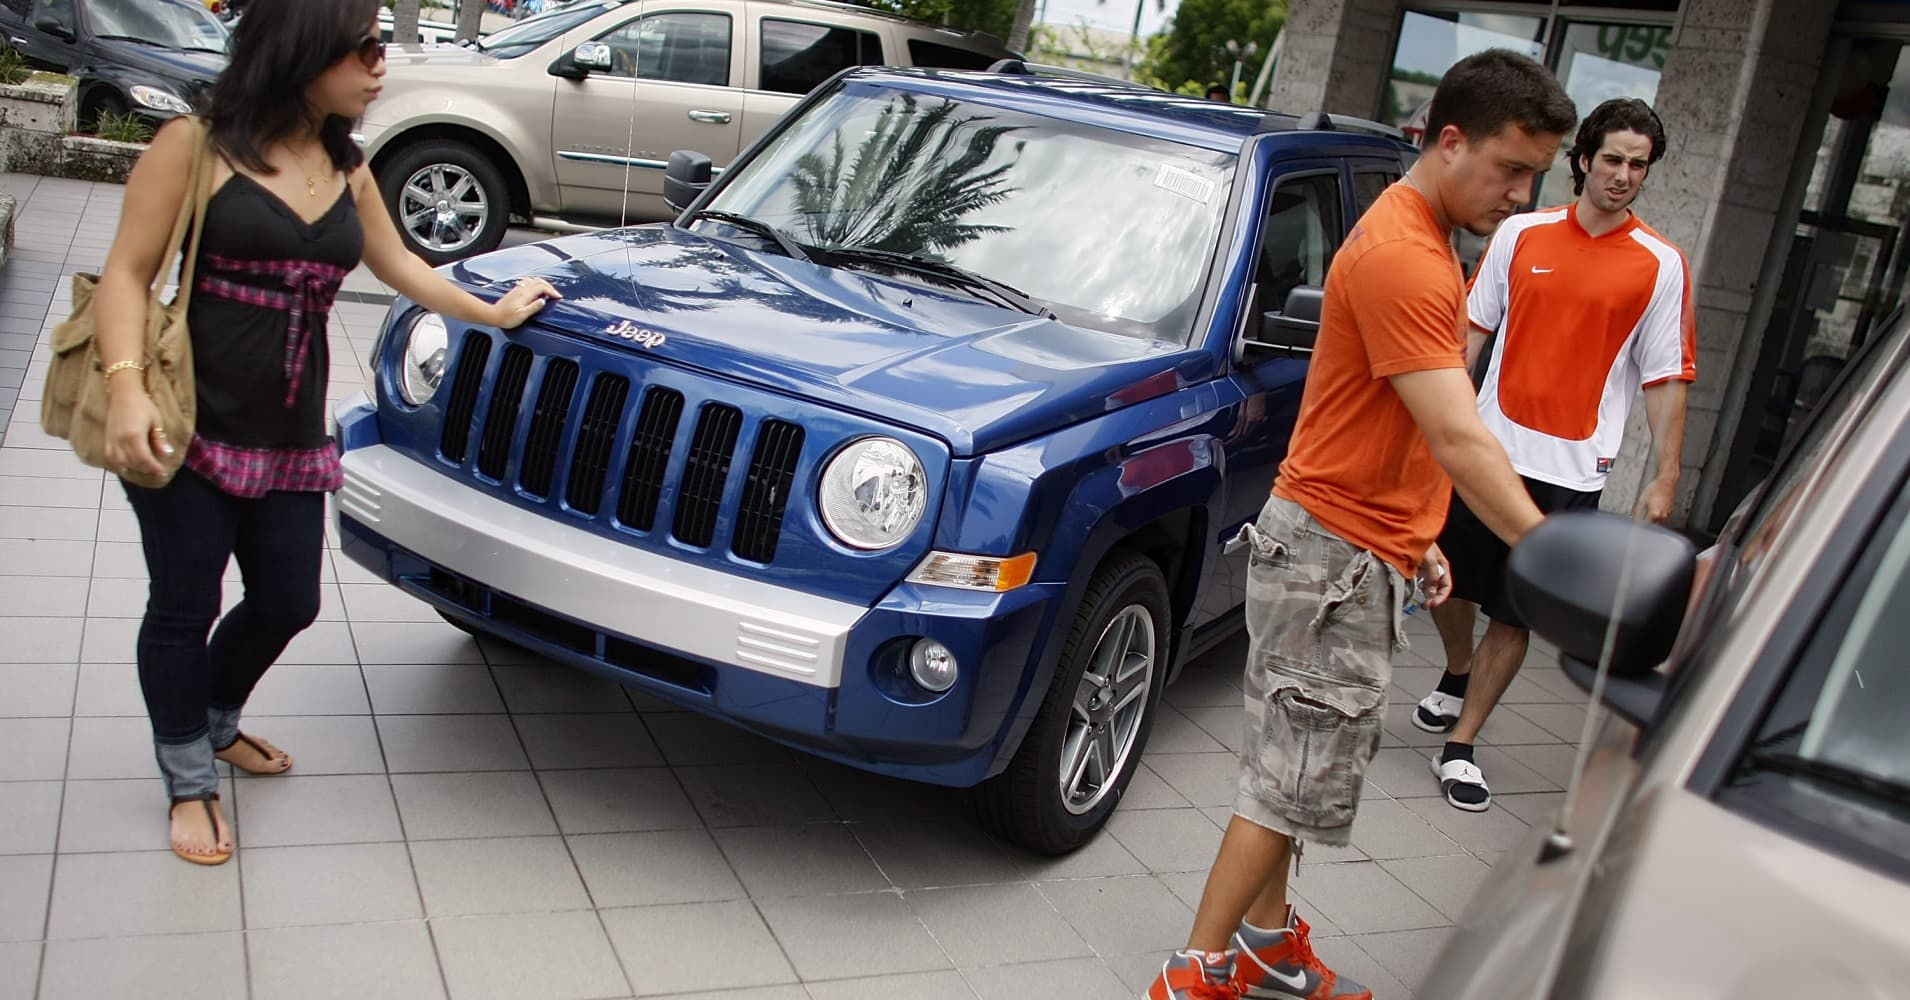 Customers look at a Jeep vehicle for sale on the sales lot of a Chrysler Jeep Dodge dealership in Miami.